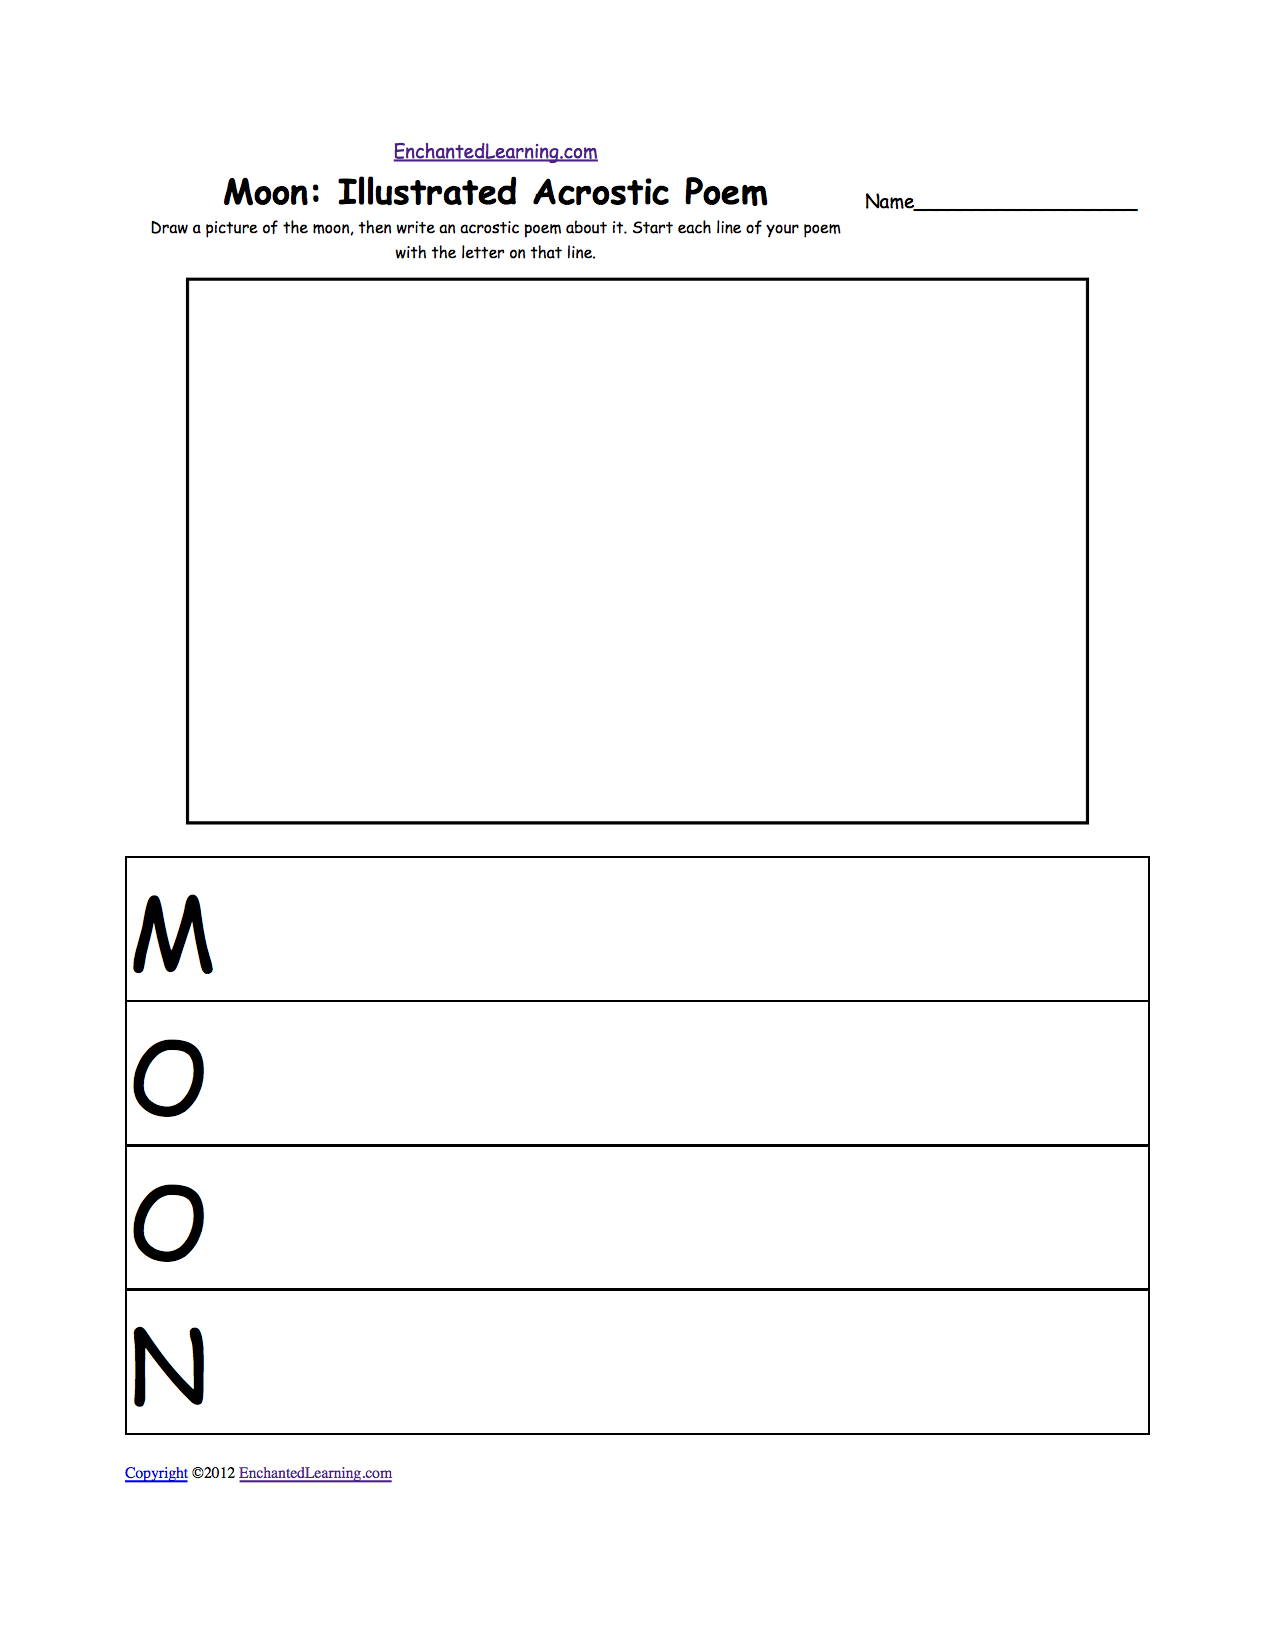 Moon Phases Worksheet Answers Moon: illustrated acrostic